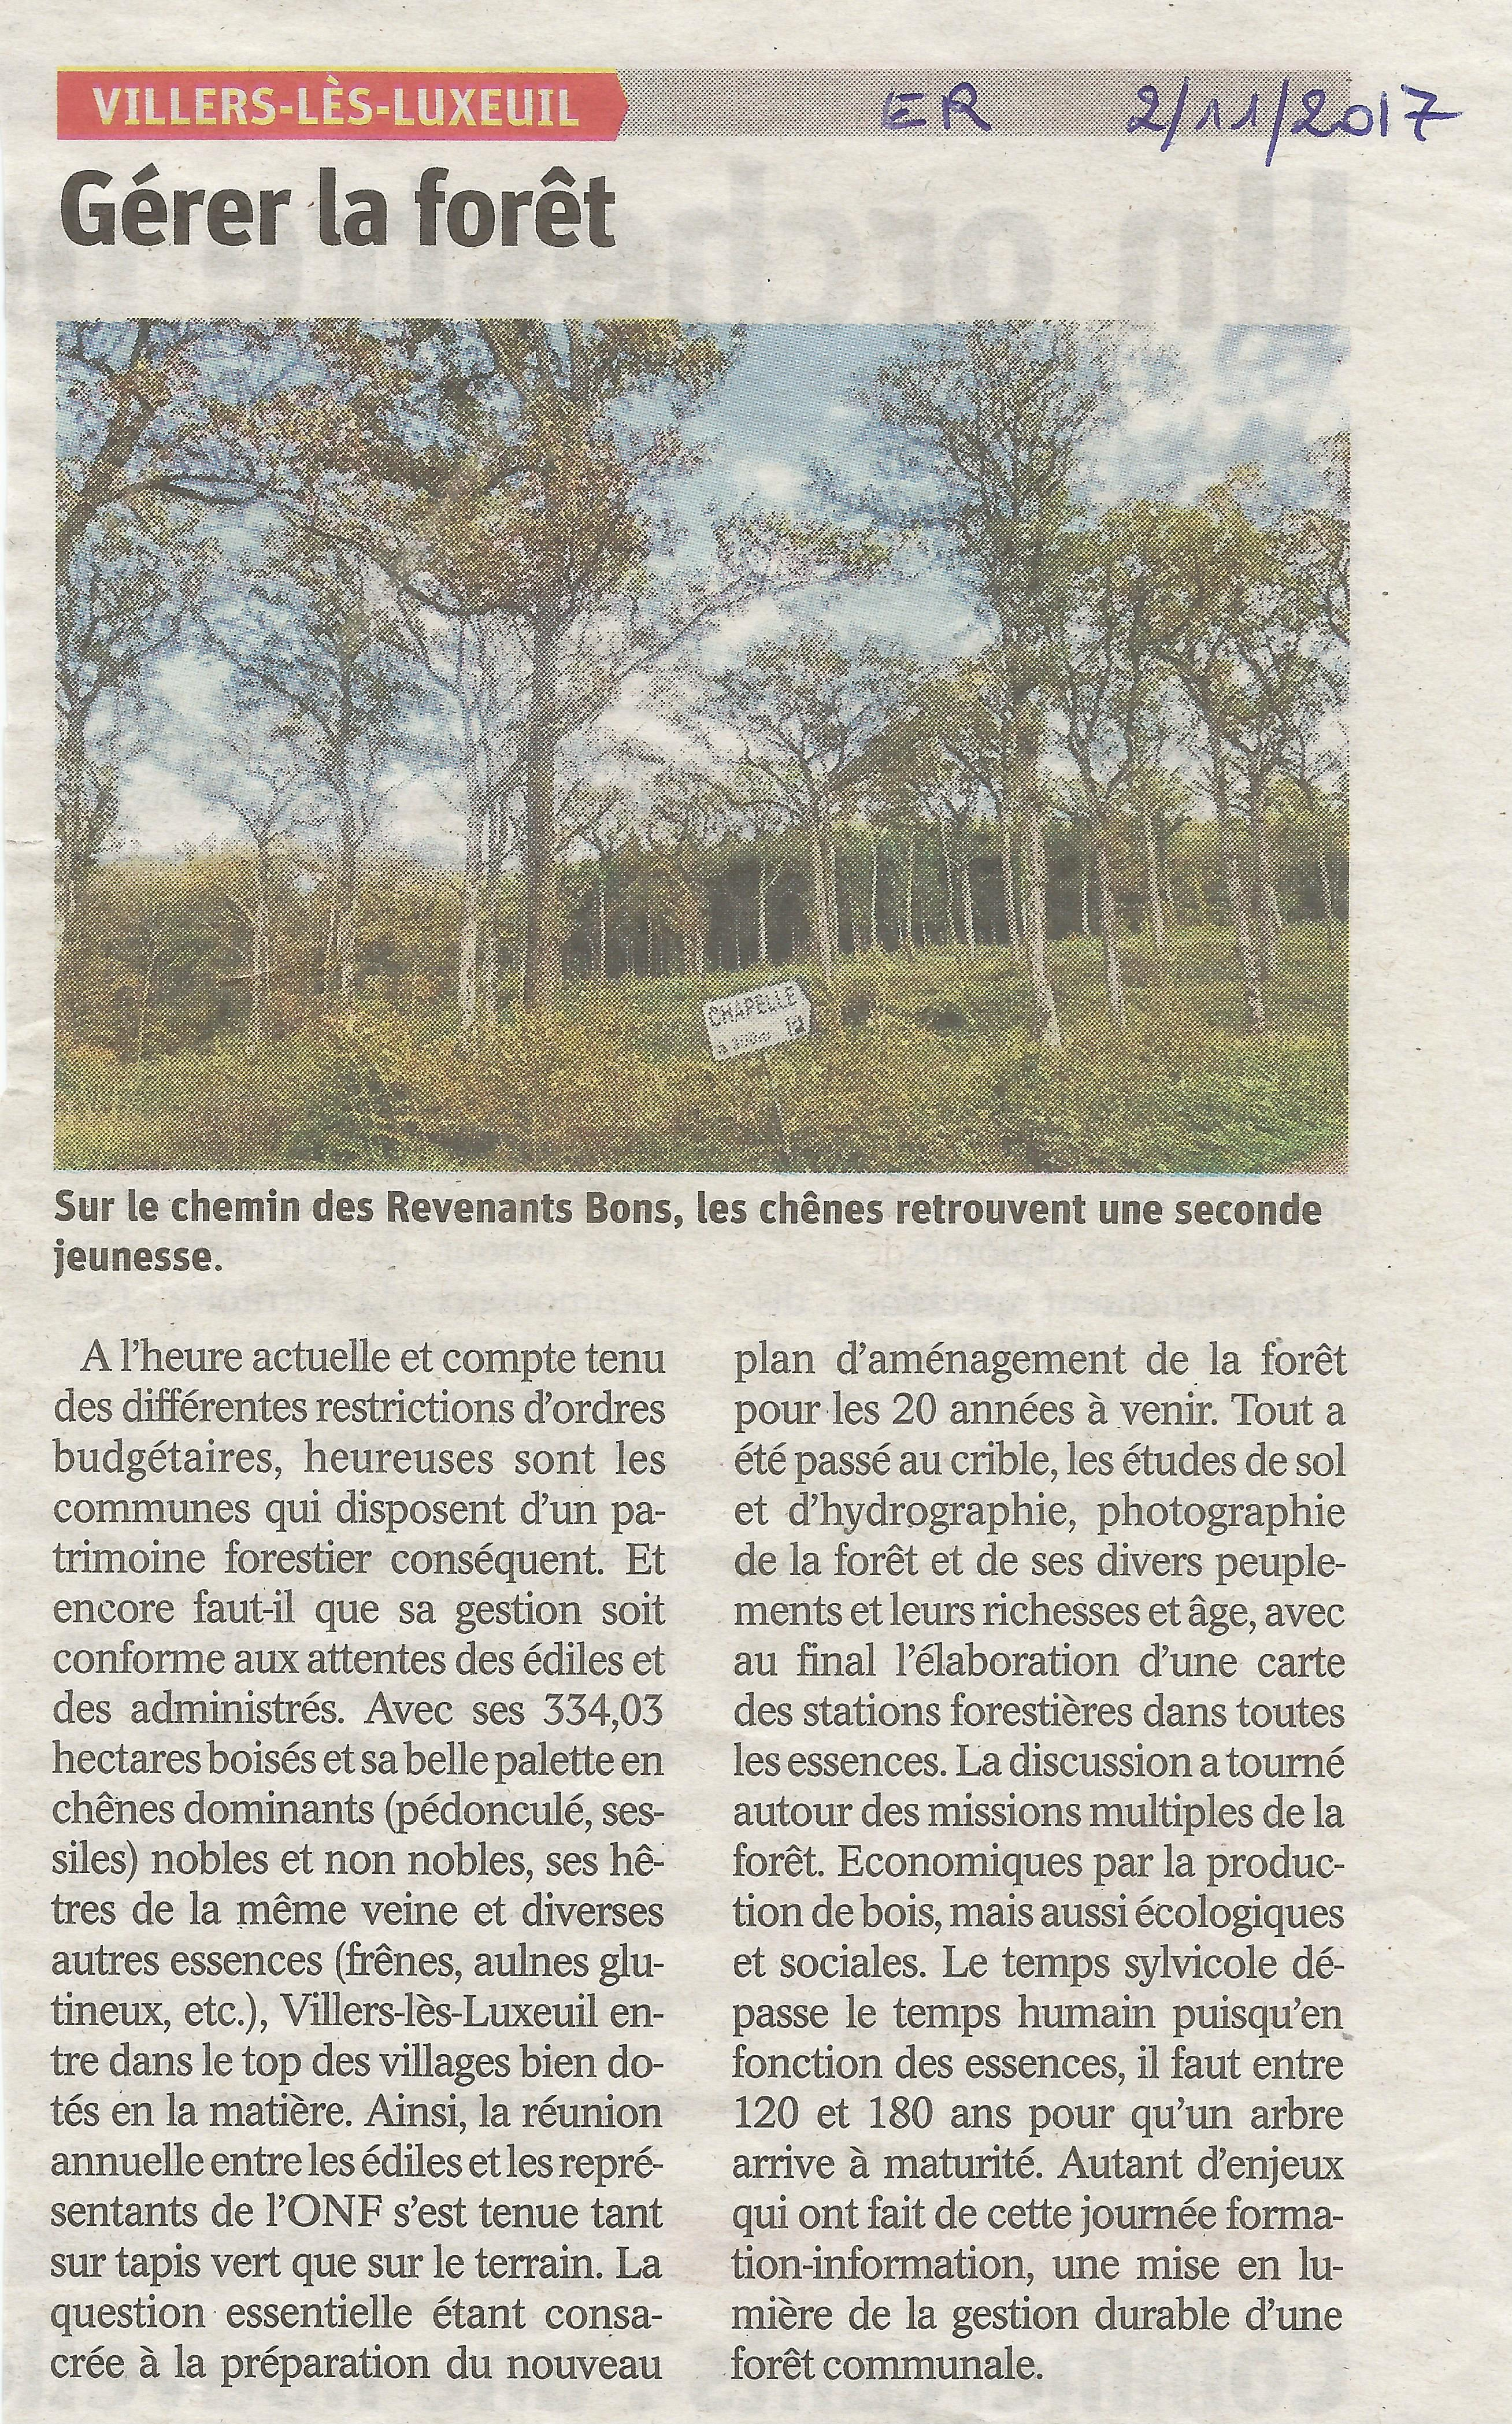 https://www.villers-les-luxeuil.com/projets/villers/files/images/2017_Mairie/Presse/2017_11_02.jpg